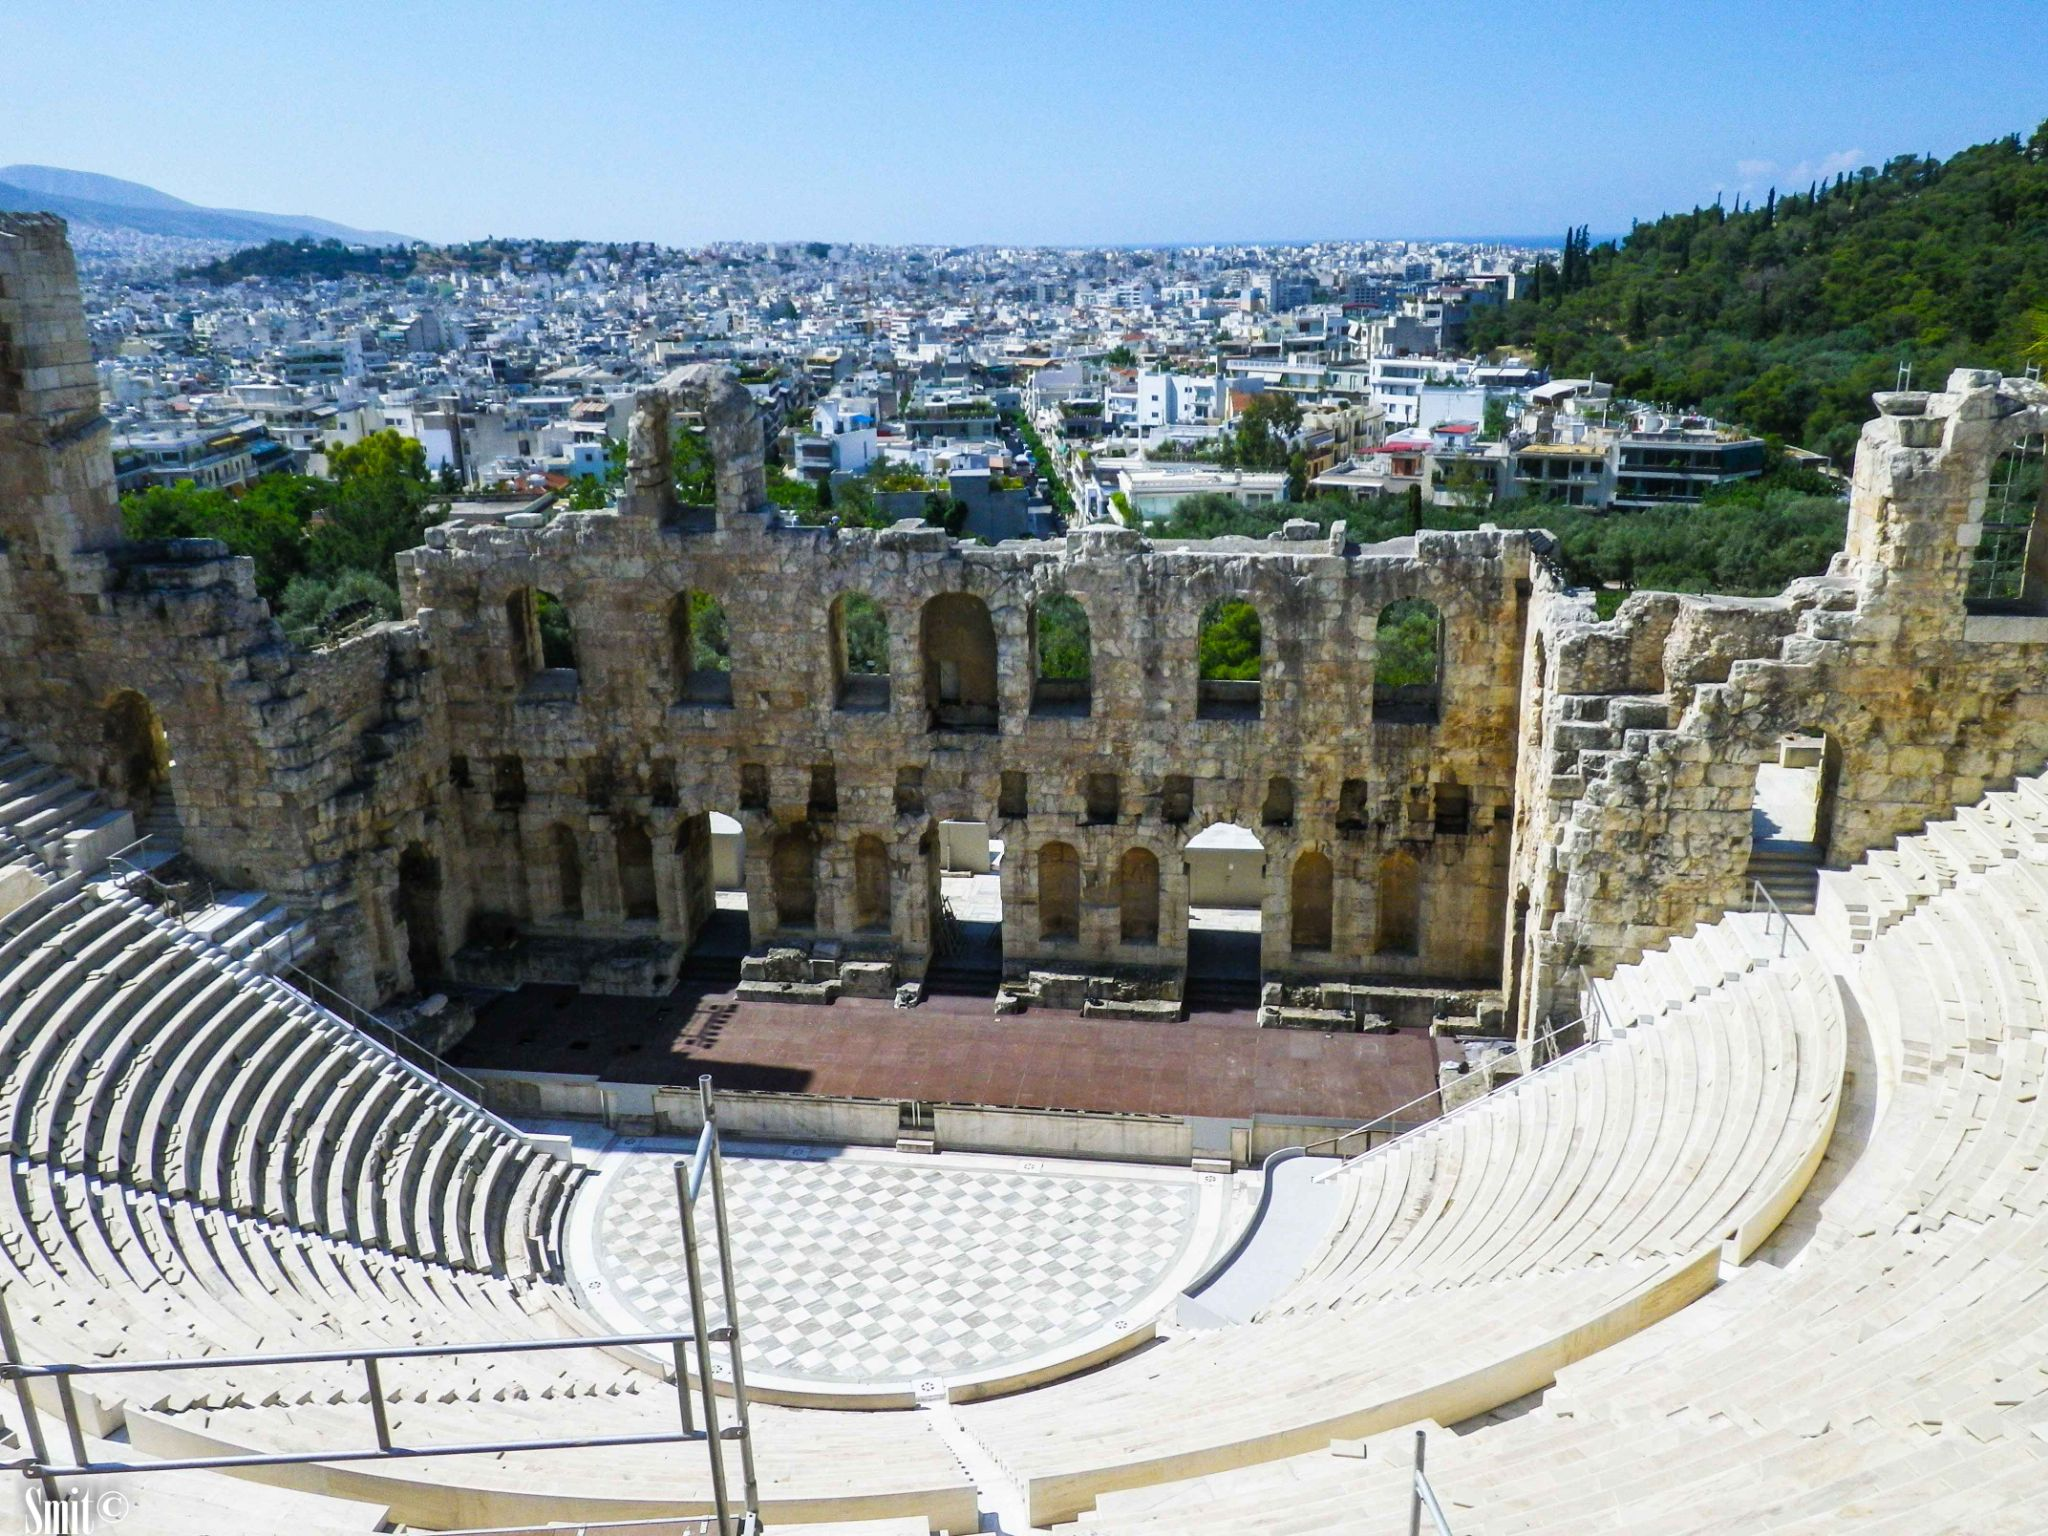 ATHENS by Harry Smit